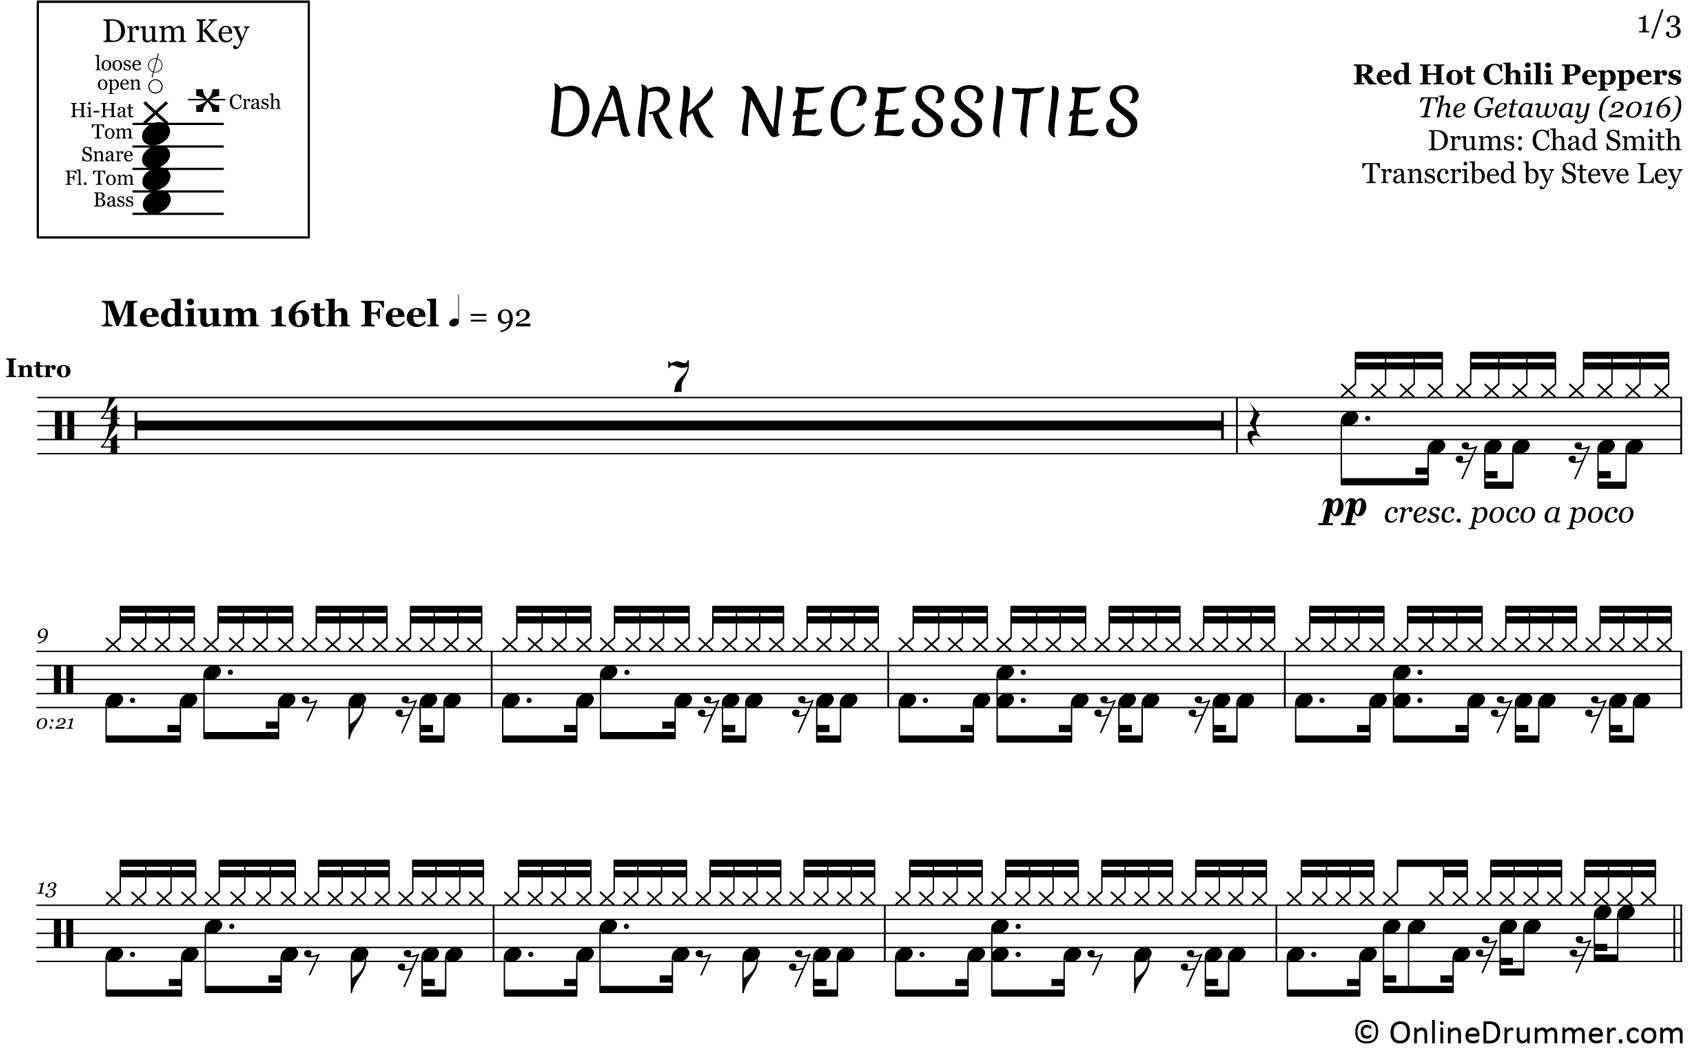 Dark Necessities - Red Hot Chili Peppers - Drum Sheet Music